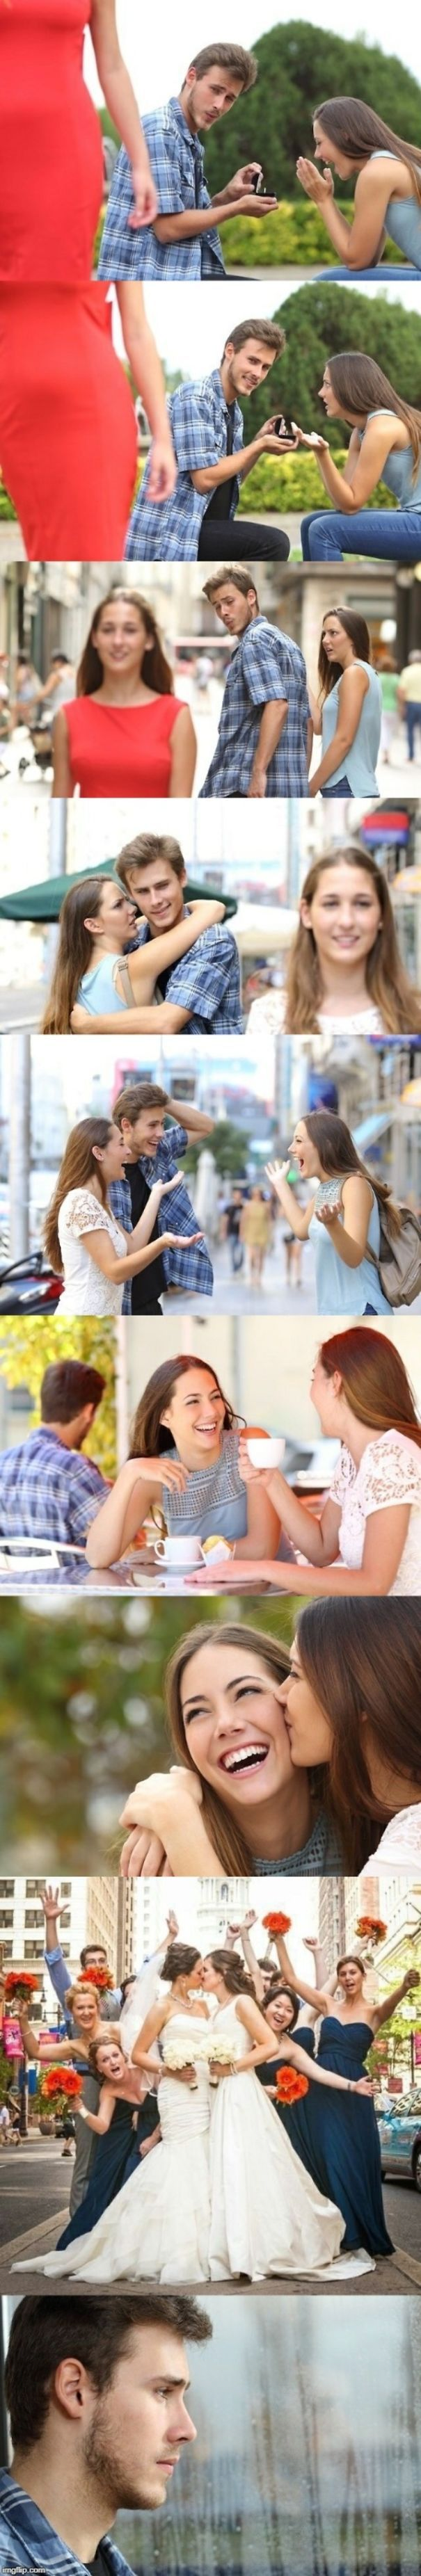 The Distracted Boyfriend Meme Gets An Unexpected Twist In This Funny Comic Boyfriend Memes Funny Comics Memes